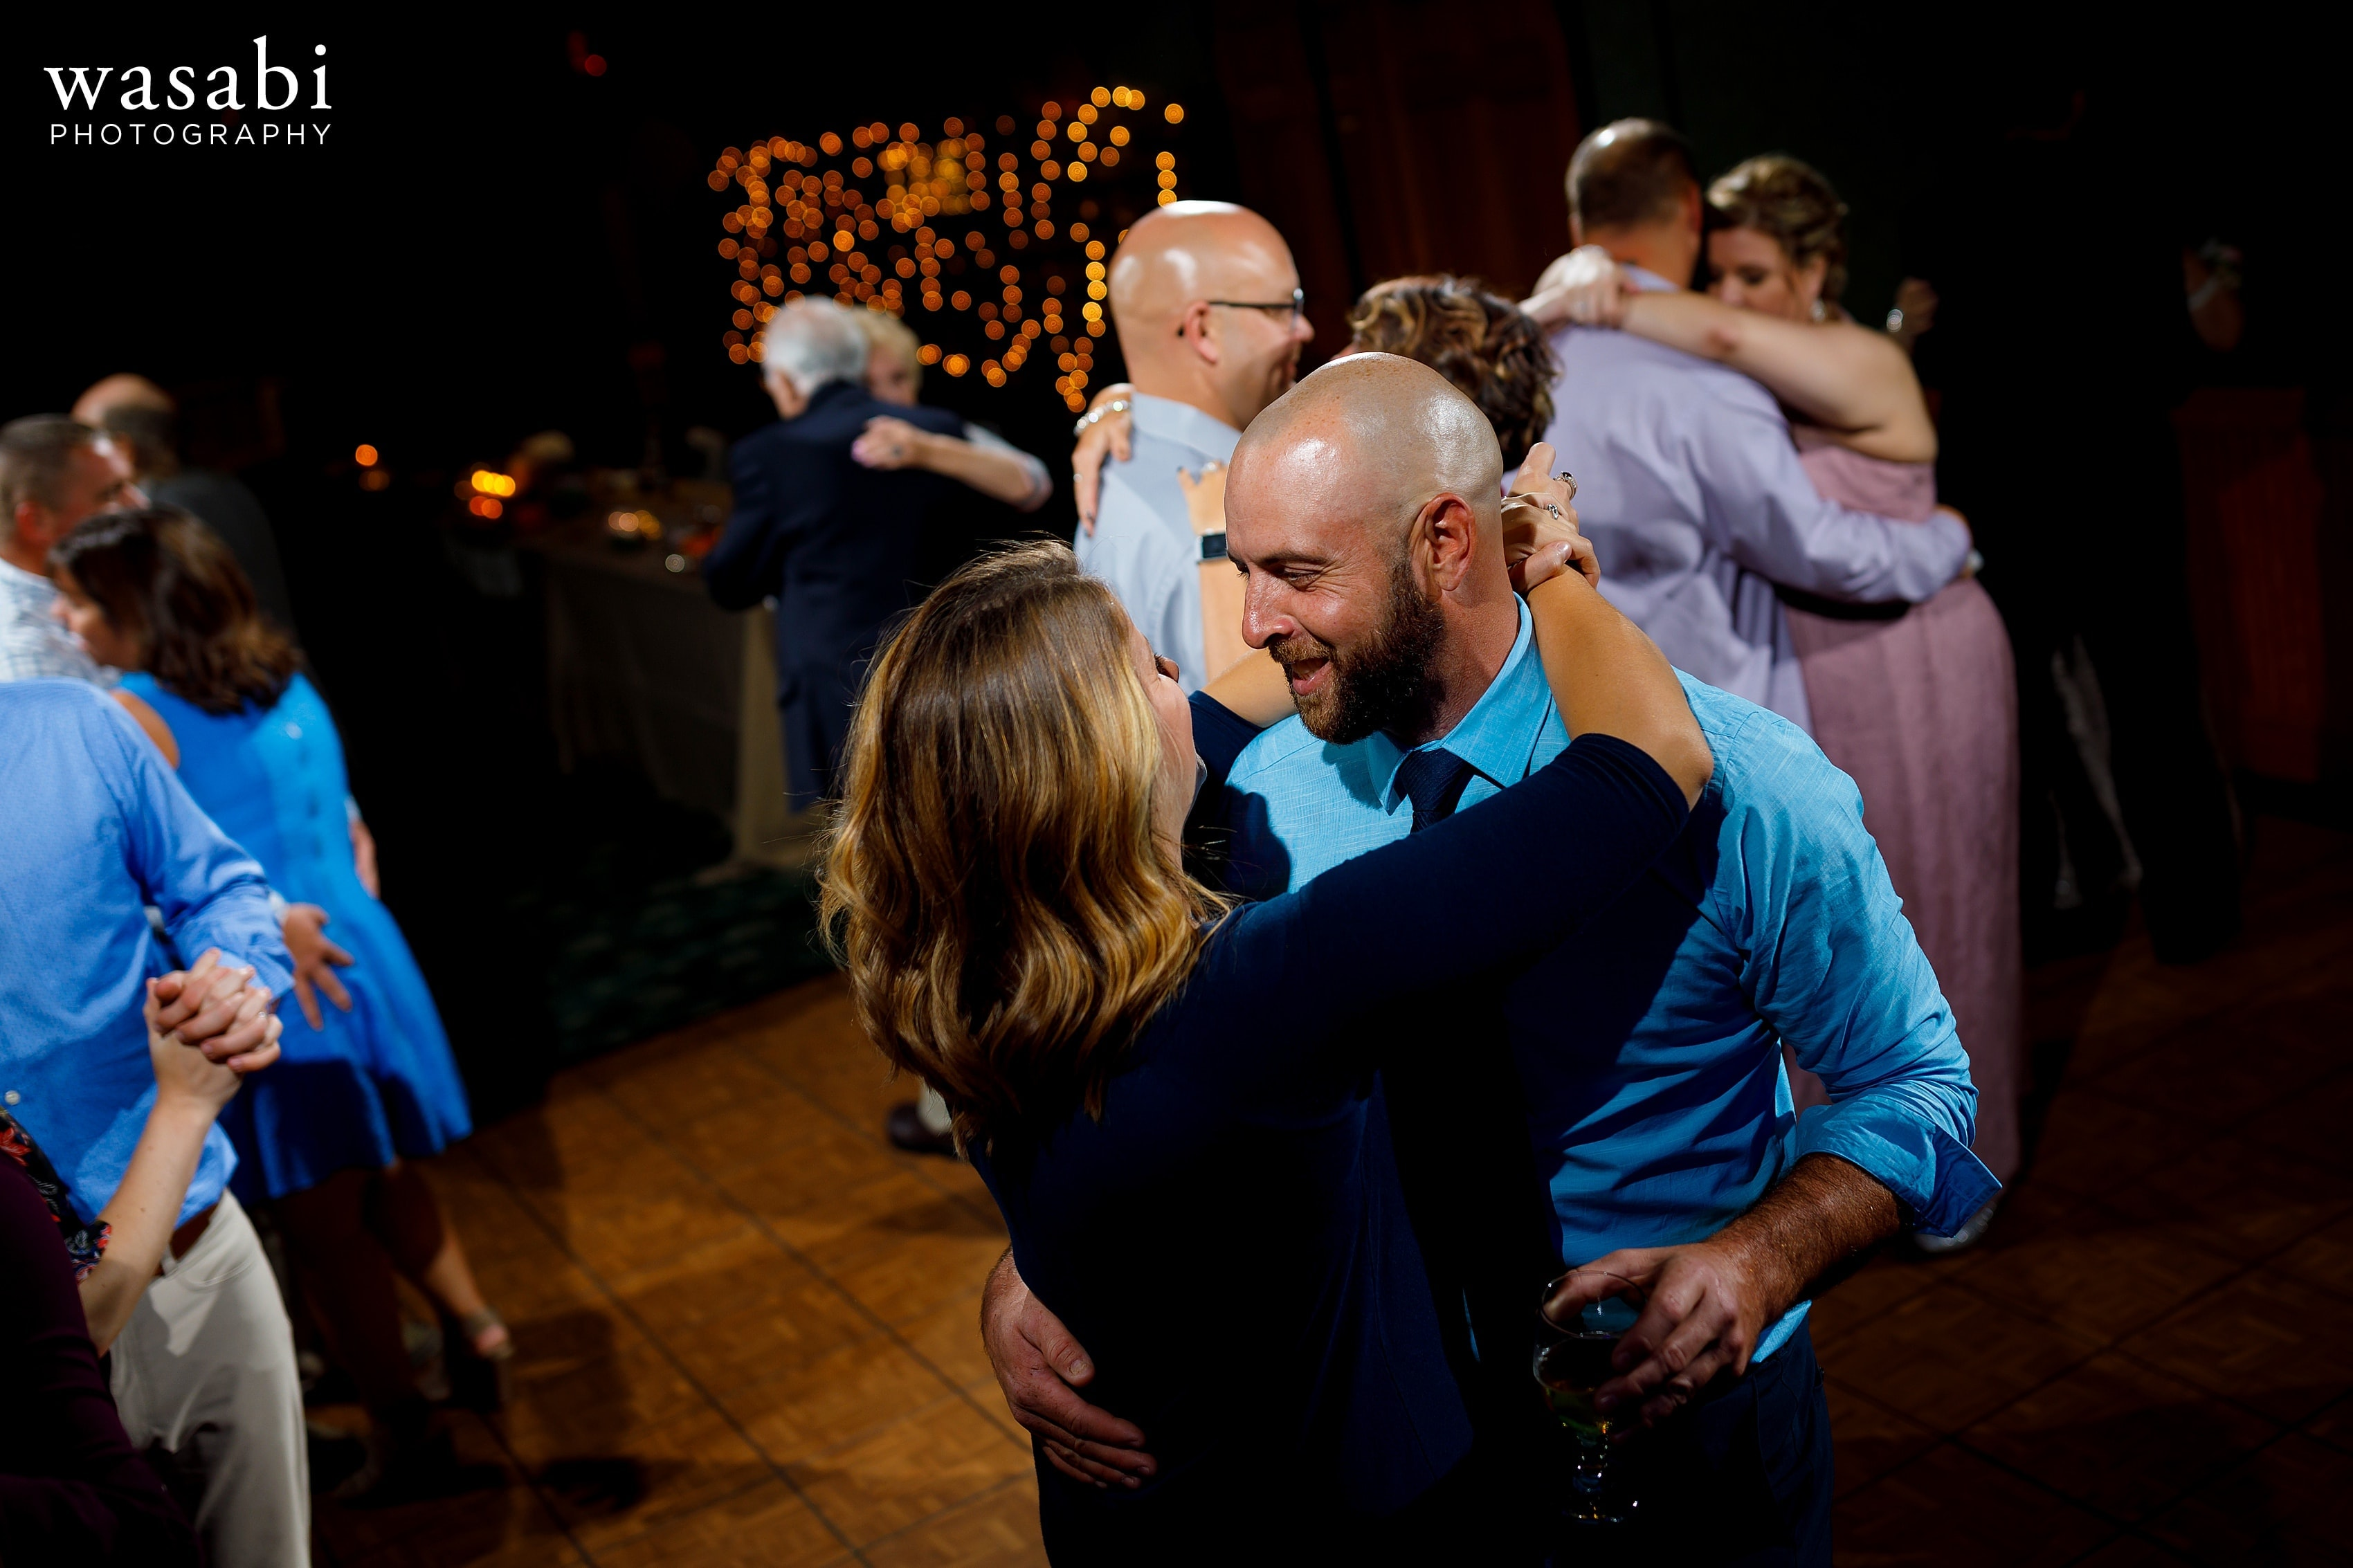 Wedding guests on the dance floor during Buck's Run Golf Club wedding reception in Mount Pleasant, Michigan.